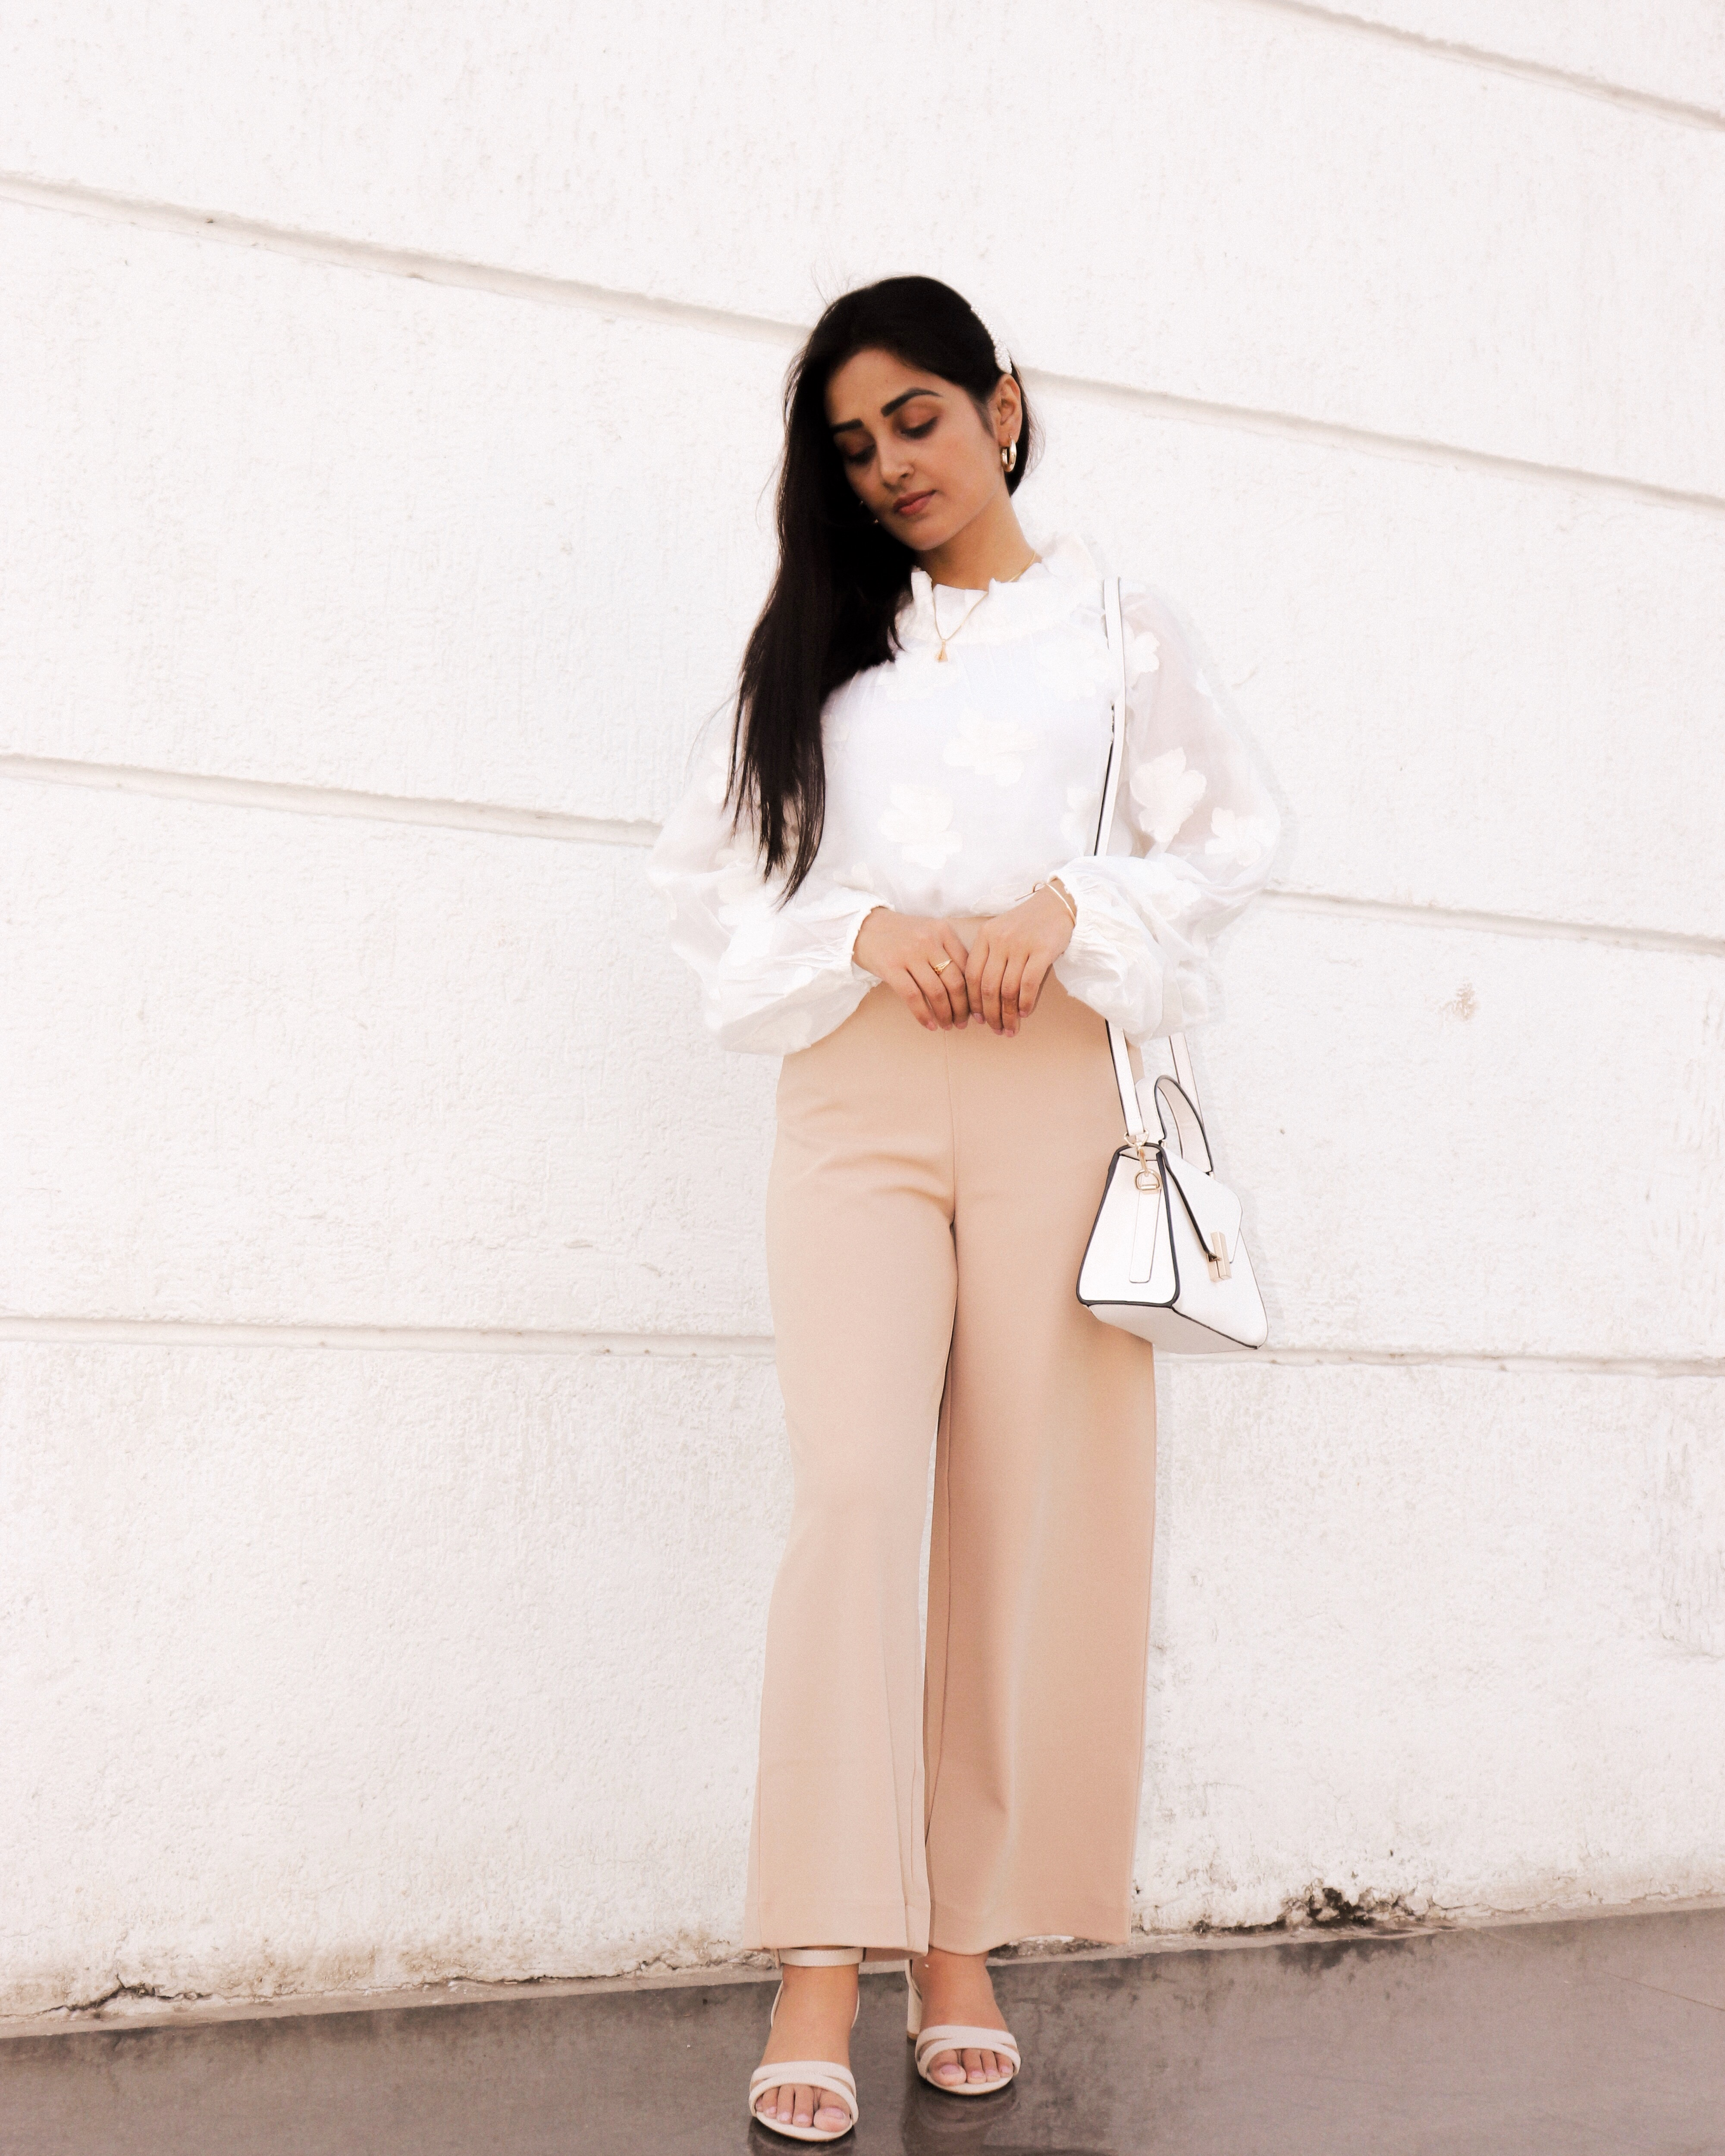 DAY TO NIGHT OUTFIT | Fashionraasa